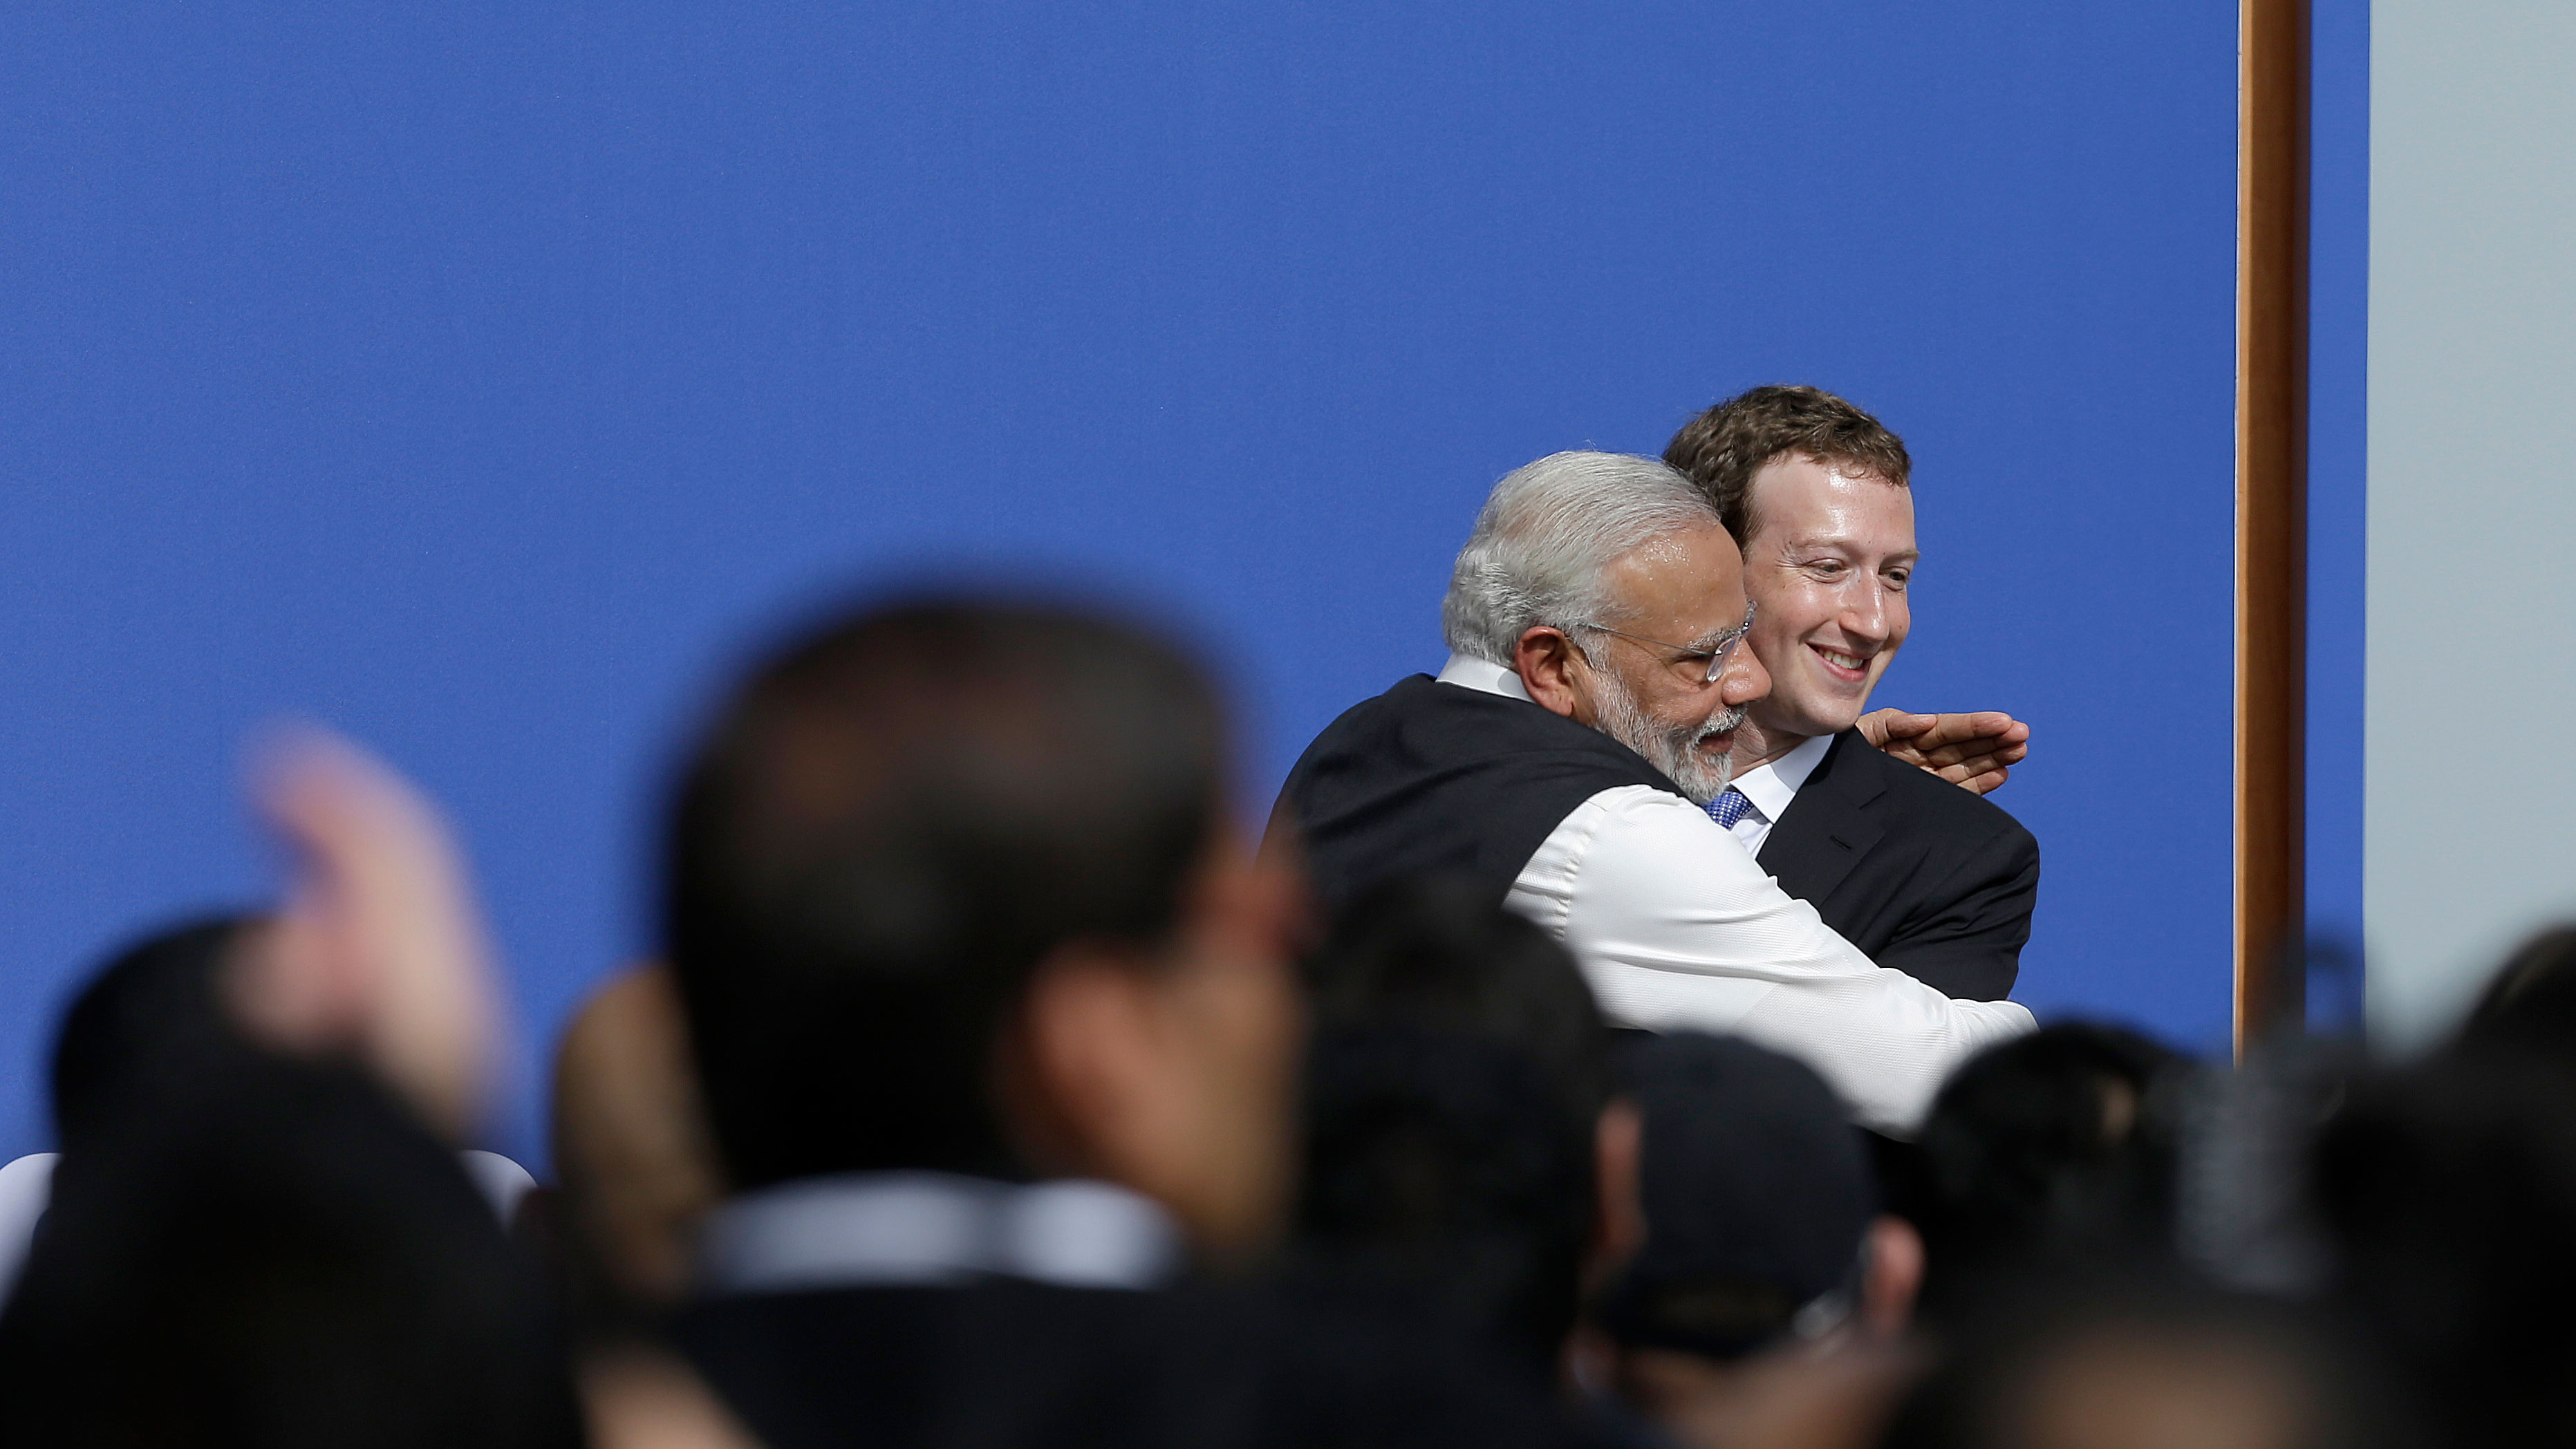 Facebook CEO Mark Zuckerberg, right, hugs Prime Minister of India Narendra Modi at Facebook in Menlo Park, Calif., Sunday, Sept. 27, 2015. A rare visit by Indian Prime Minister Narendra Modi this weekend has captivated his extensive fan club in the area and commanded the attention of major U.S. technology companies eager to extend their reach into a promising overseas market. (AP Photo/Jeff Chiu)